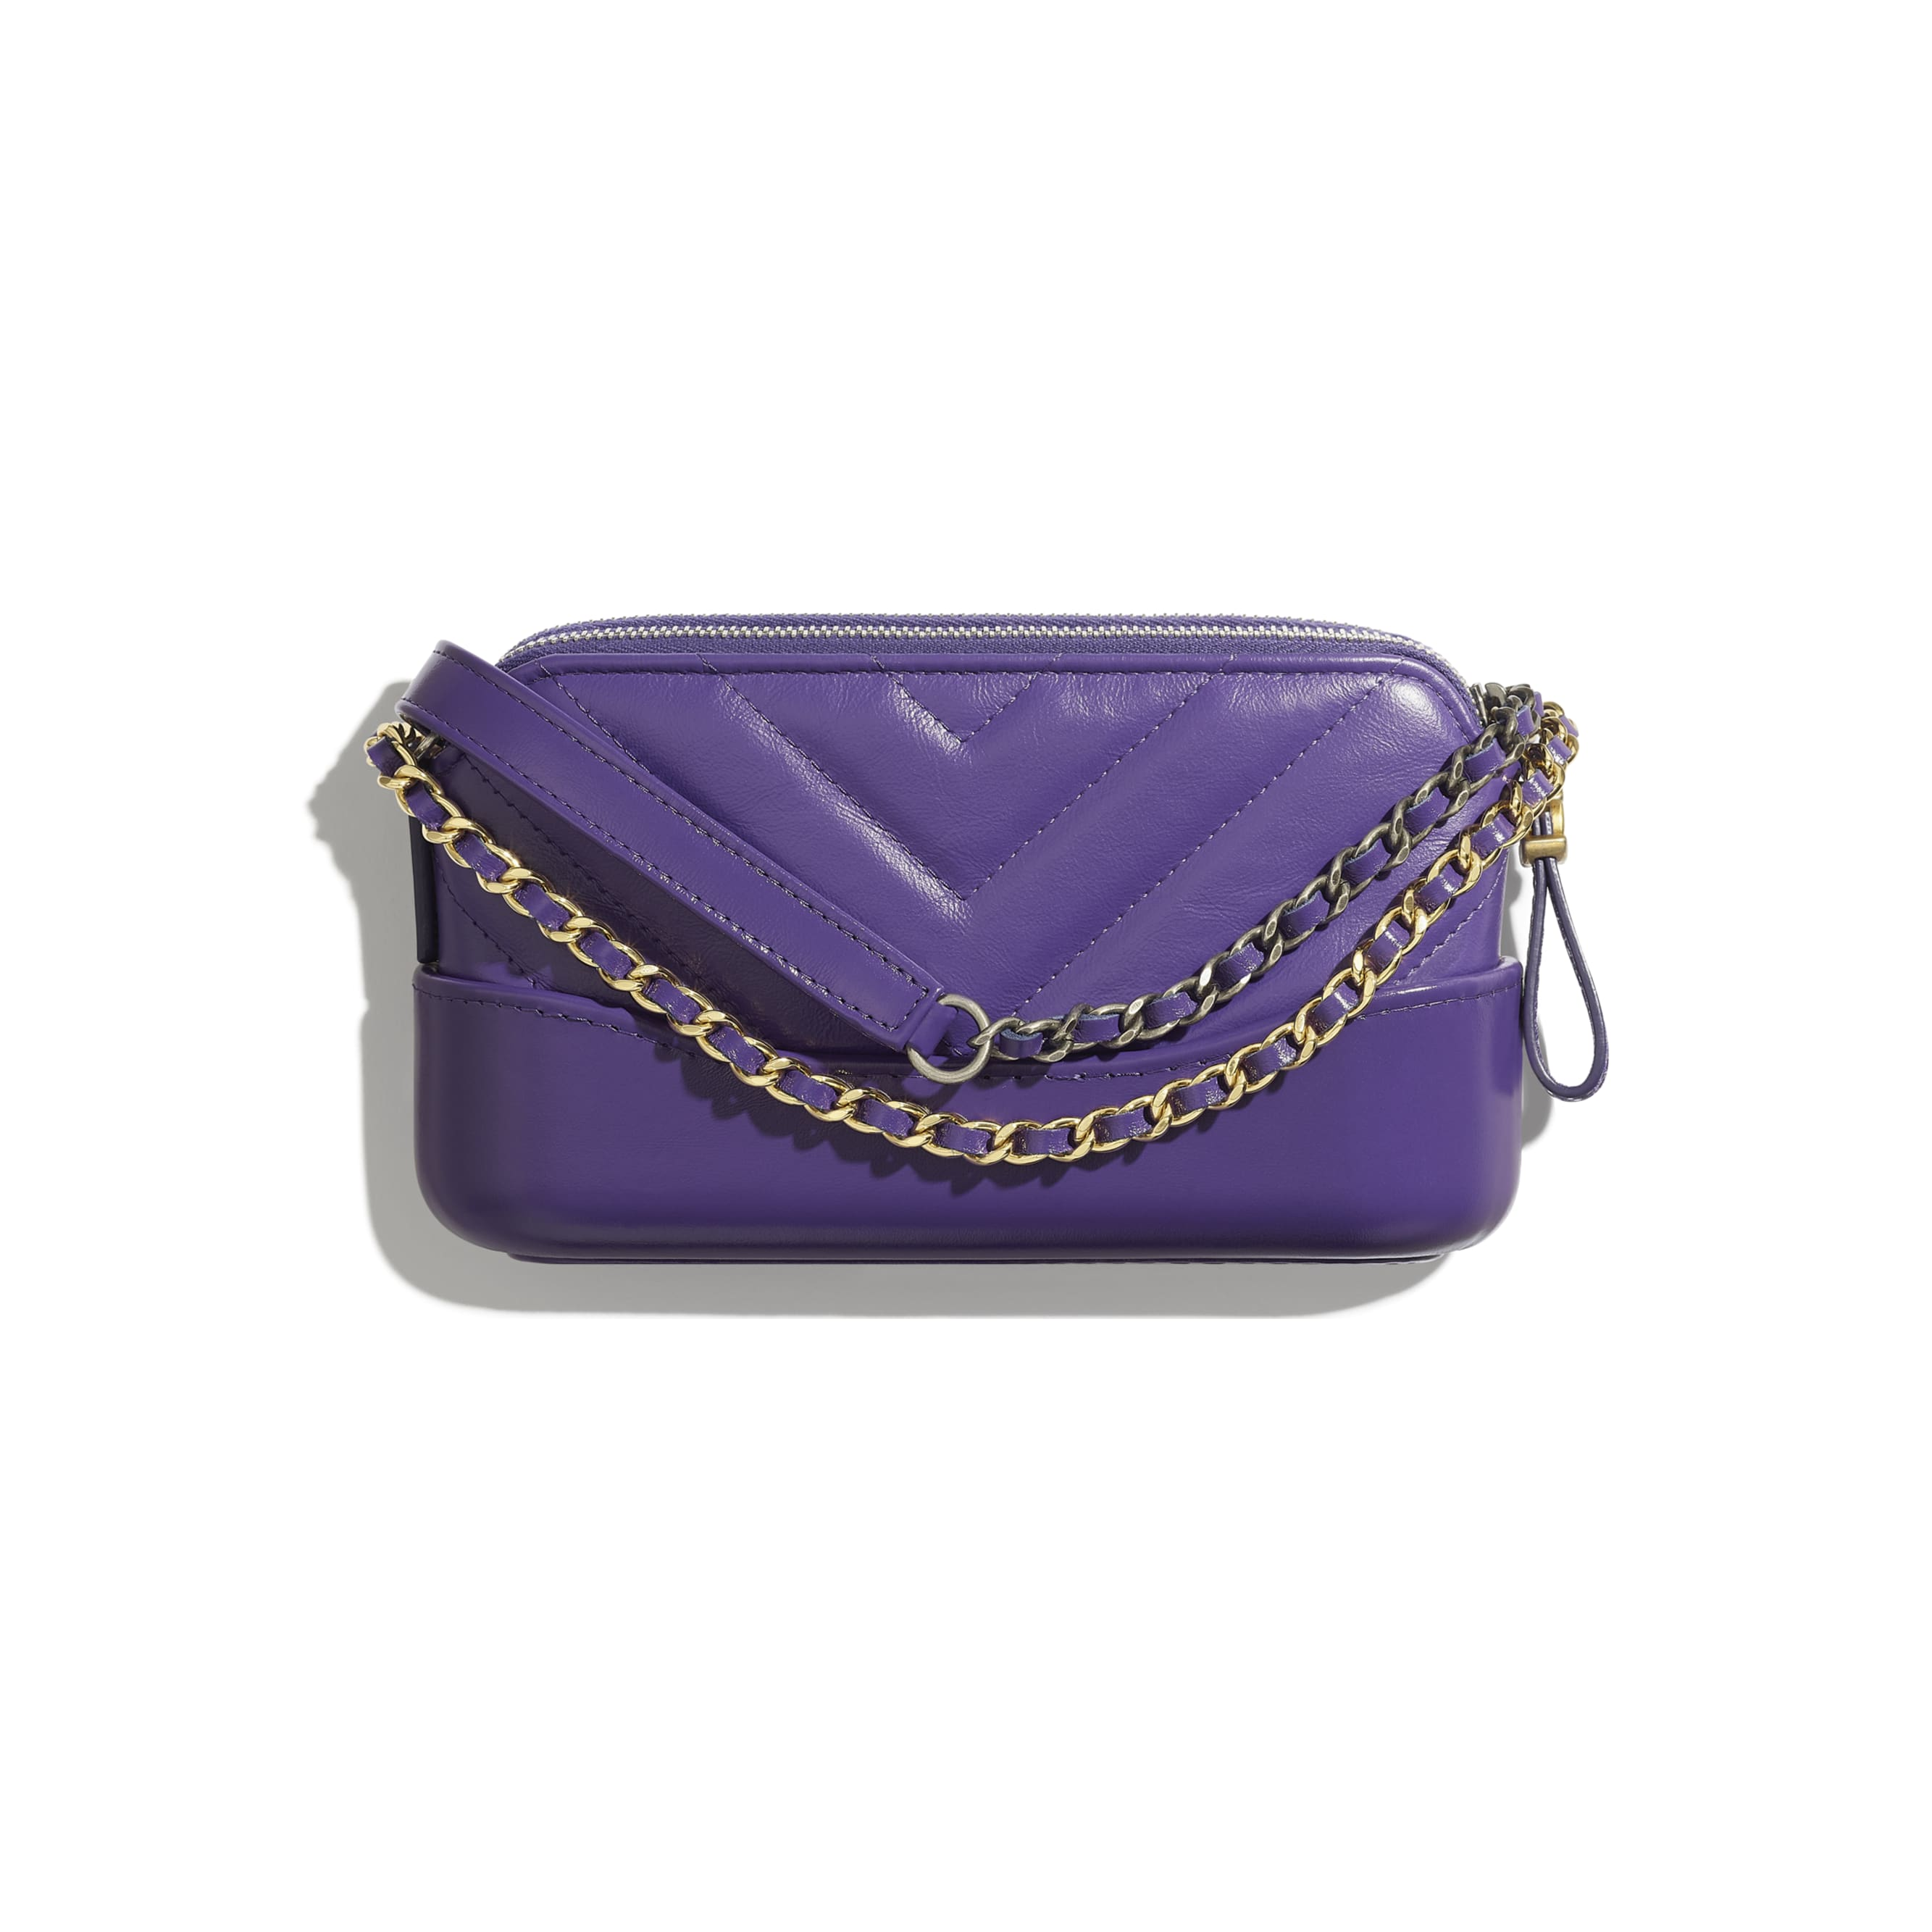 Clutch With Chain - Purple - Aged Calfskin, Smooth Calfskin, Gold-Tone & Silver-Tone Metal - Alternative view - see standard sized version